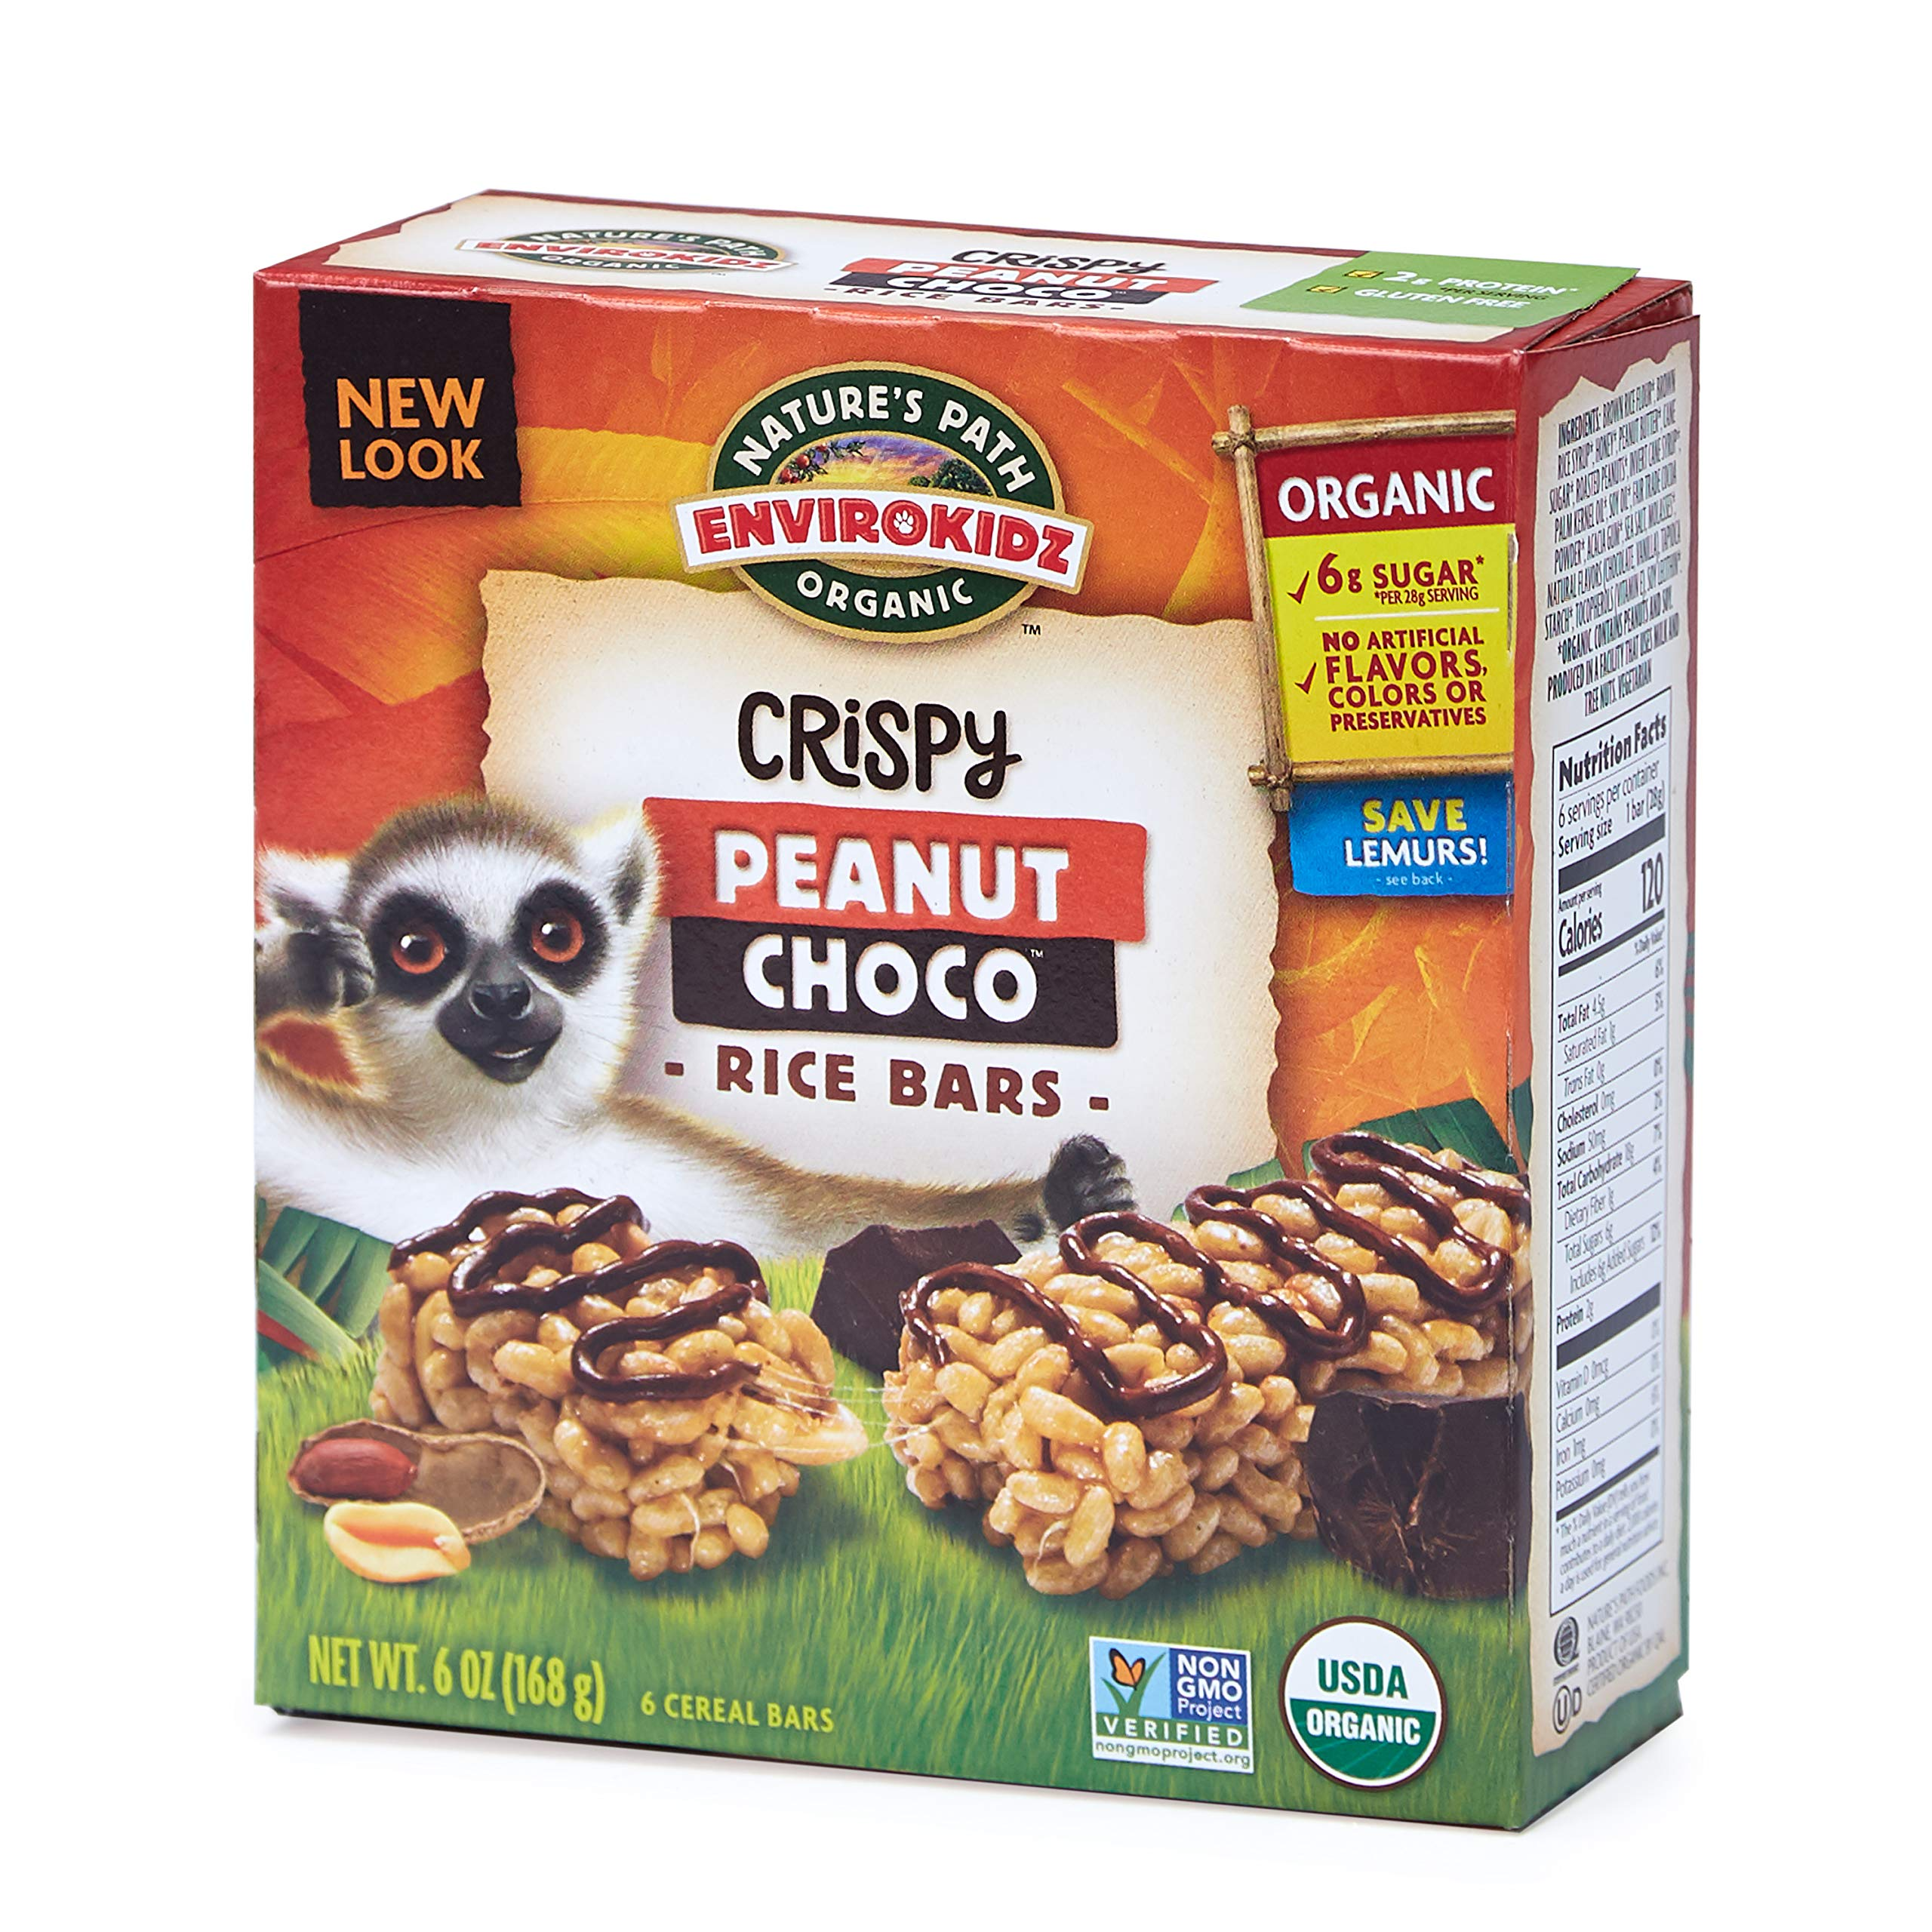 Nature's Path EnviroKidz Peanut Choco Crispy Rice Bars, Healthy, Organic, Gluten-Free, 6 Ounce Box (Pack of 6)